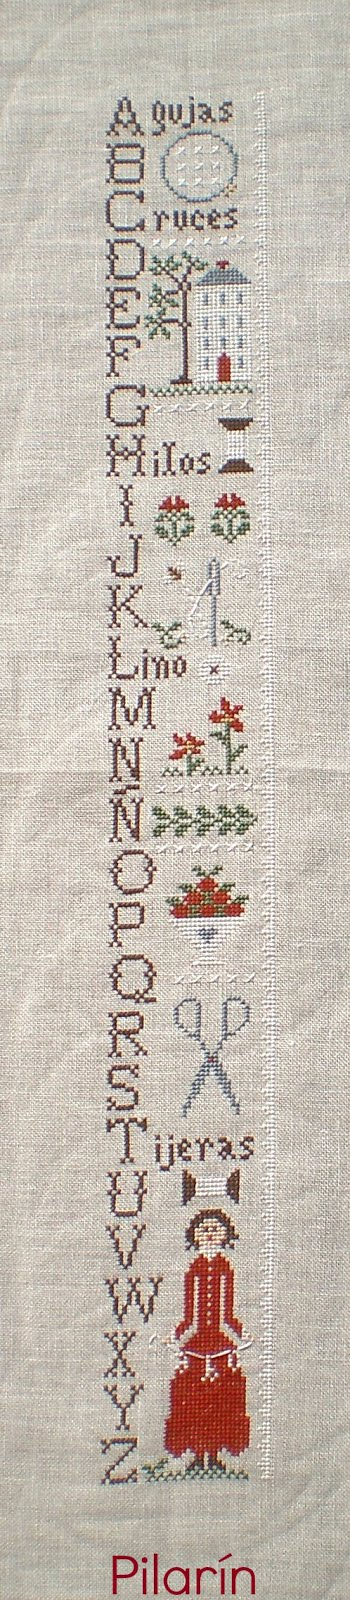 LHN - Needlework ABC's